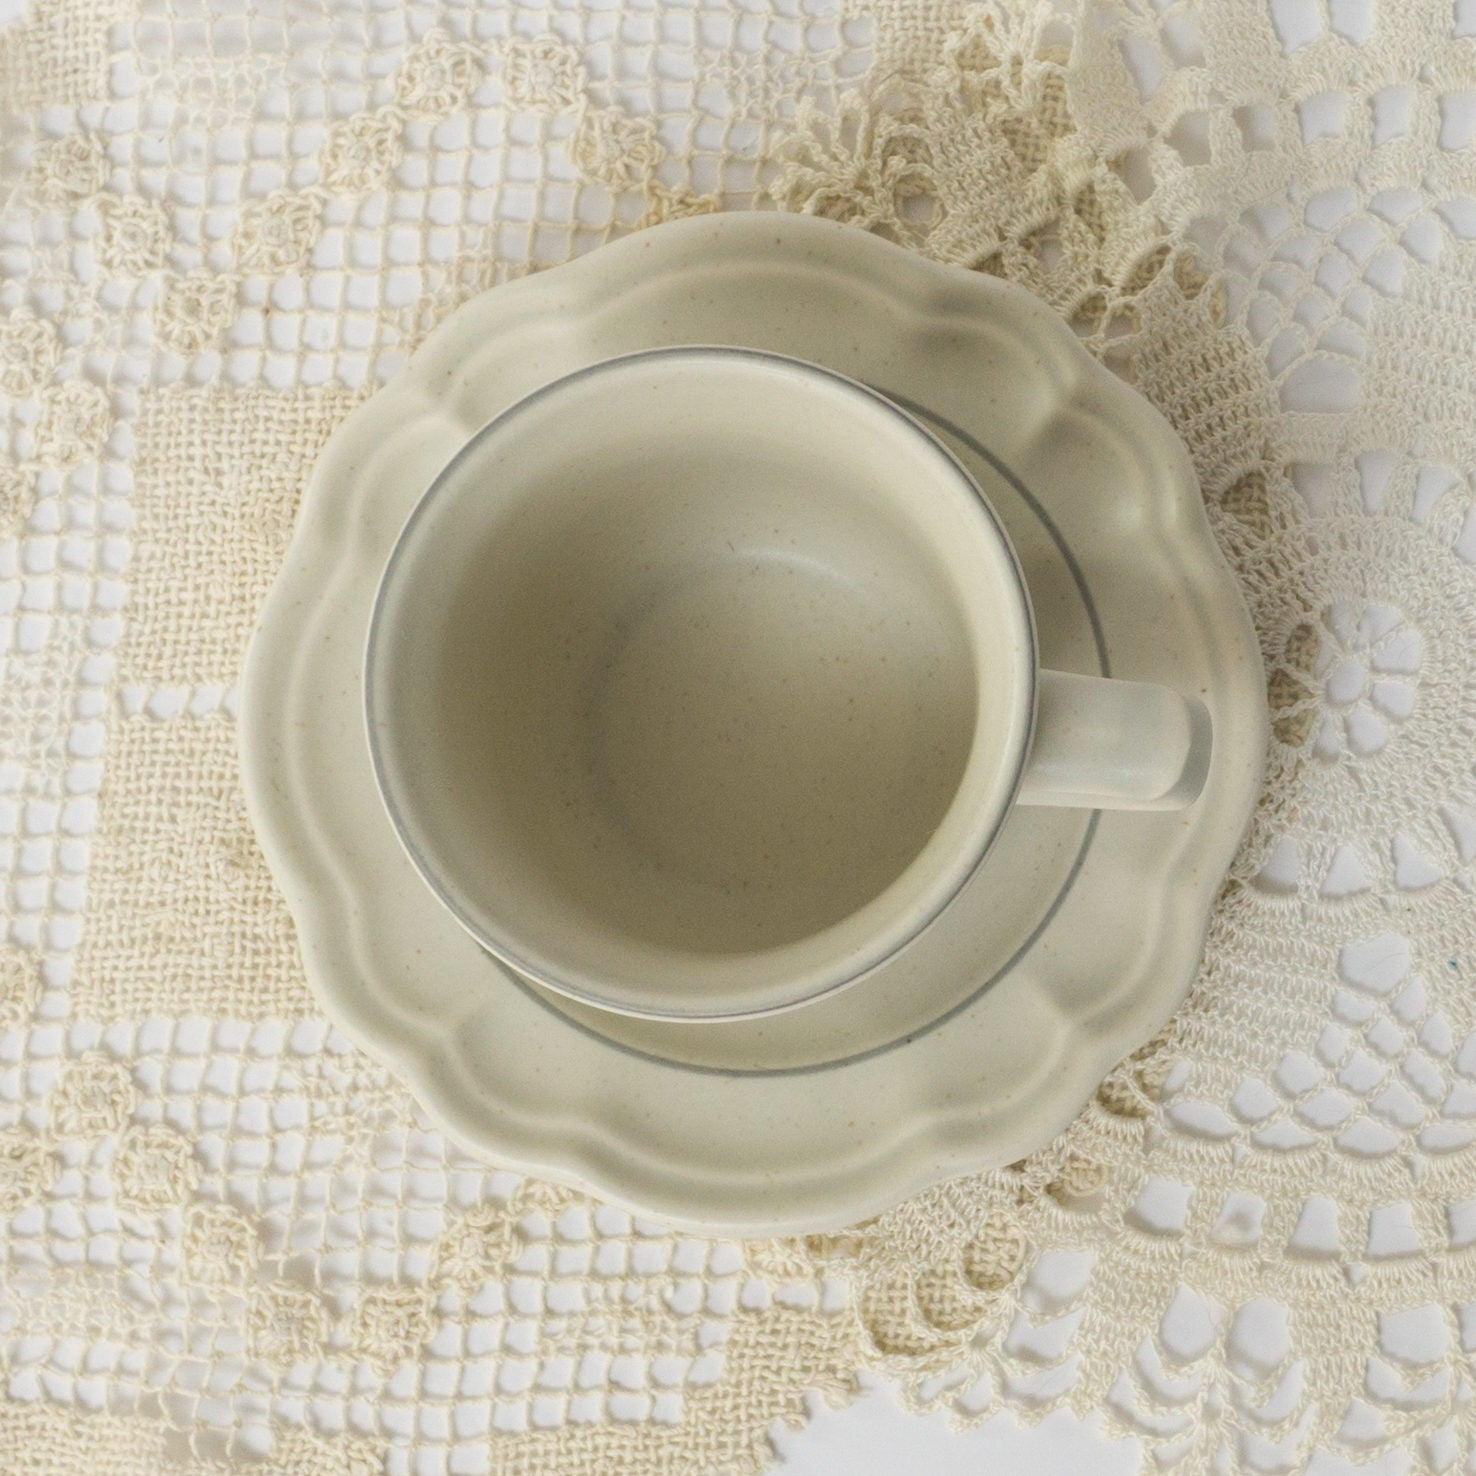 SEVEN Vintage Beige Gray White Stoneware Flat Cup & Saucer Set in Heirloom by Pfaltzgraff